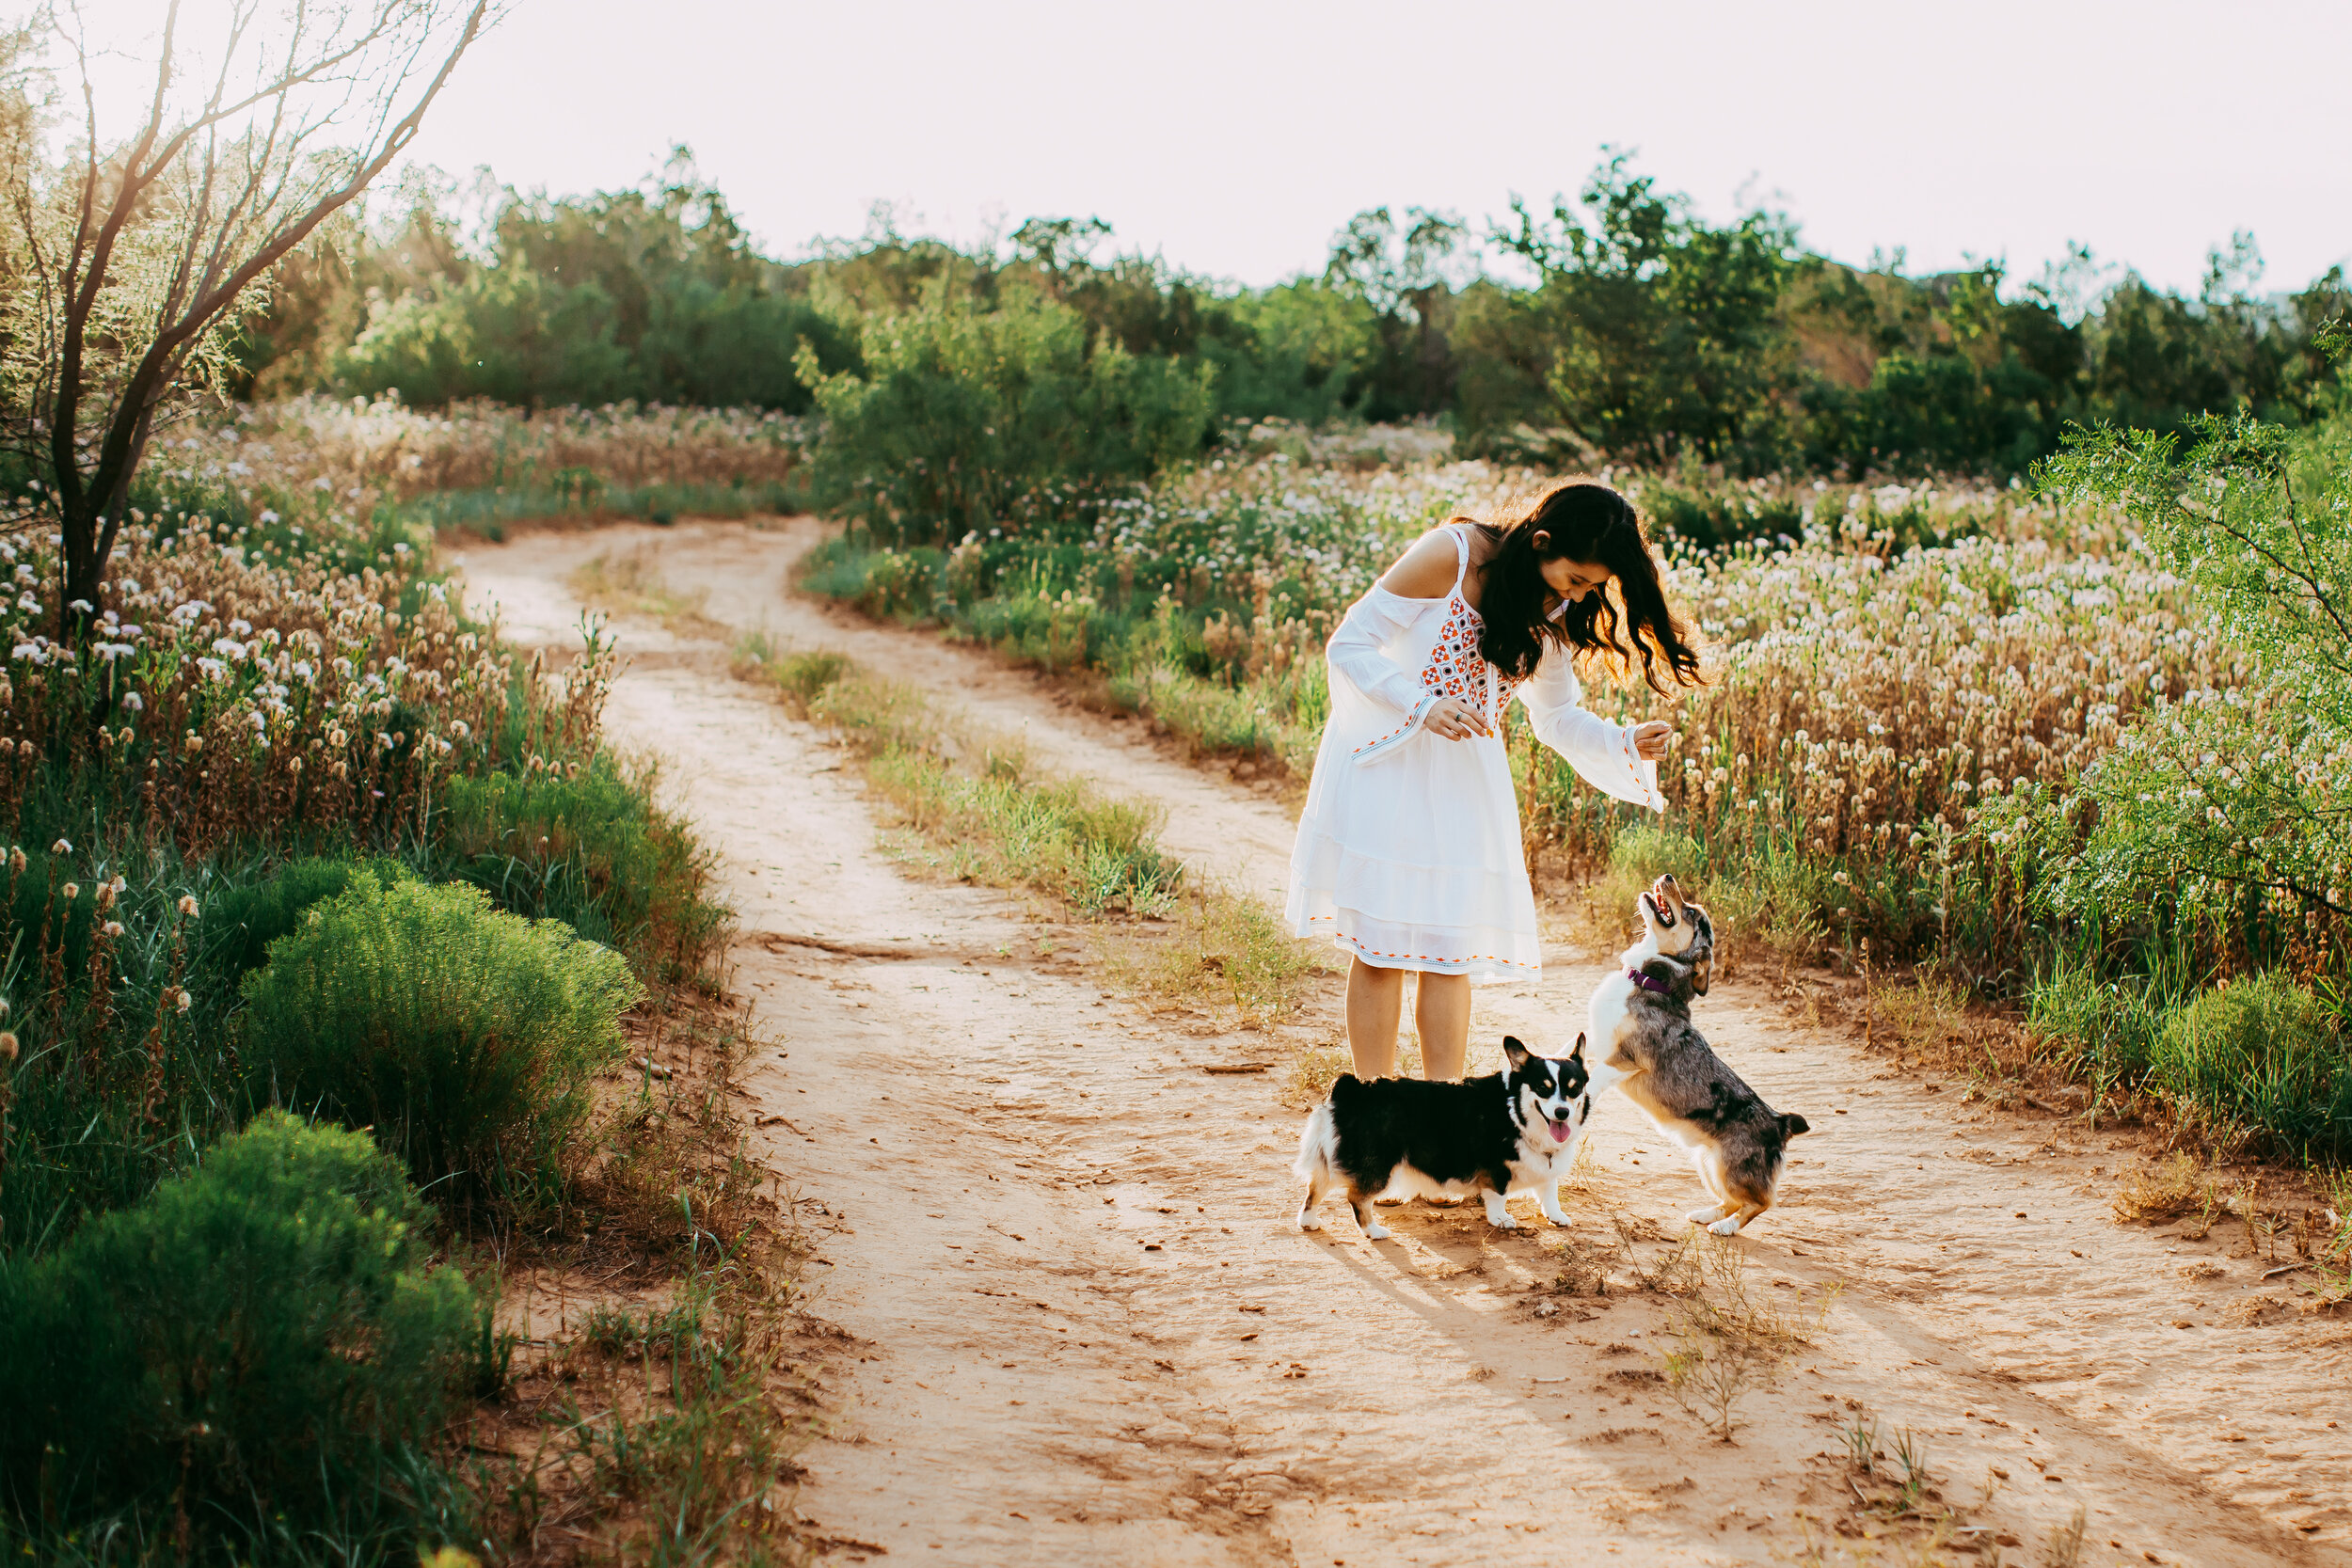 Playing with the puppies as they walked down a dirt path #tealawardphotography #texasphotographer #amarillophotography #amarillophotographer #lifestylephotography #emotionalphotography #photoshoot #family #puppylove #purejoy #puppyphotos #lifestyleinteraction